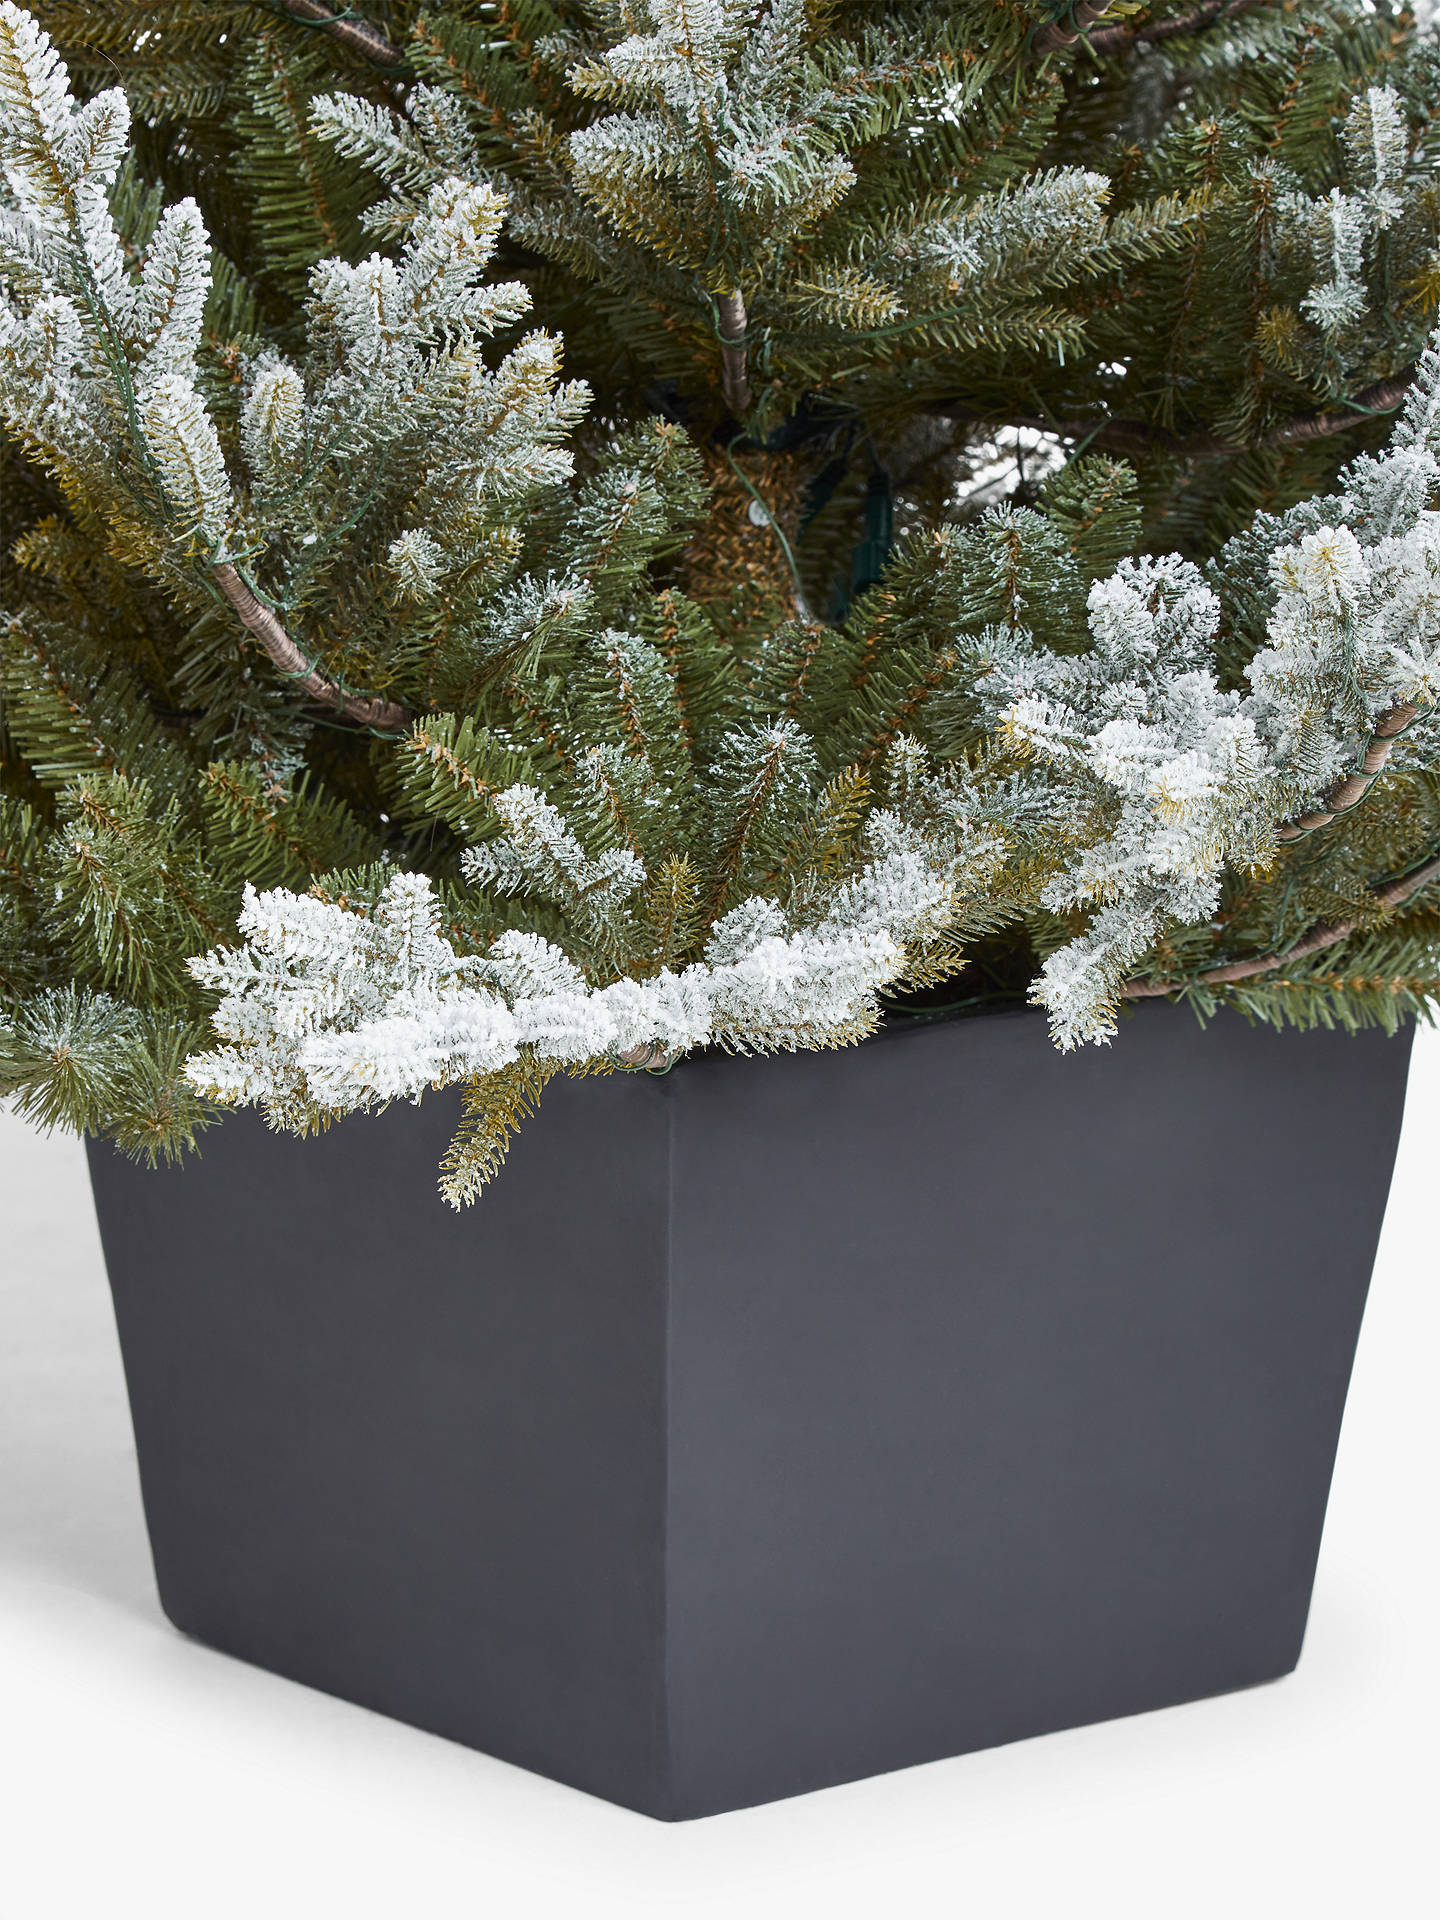 John Lewis & Partners Cotswold Snowy Potted Pre-lit Christmas Tree, 7ft at John Lewis & Partners